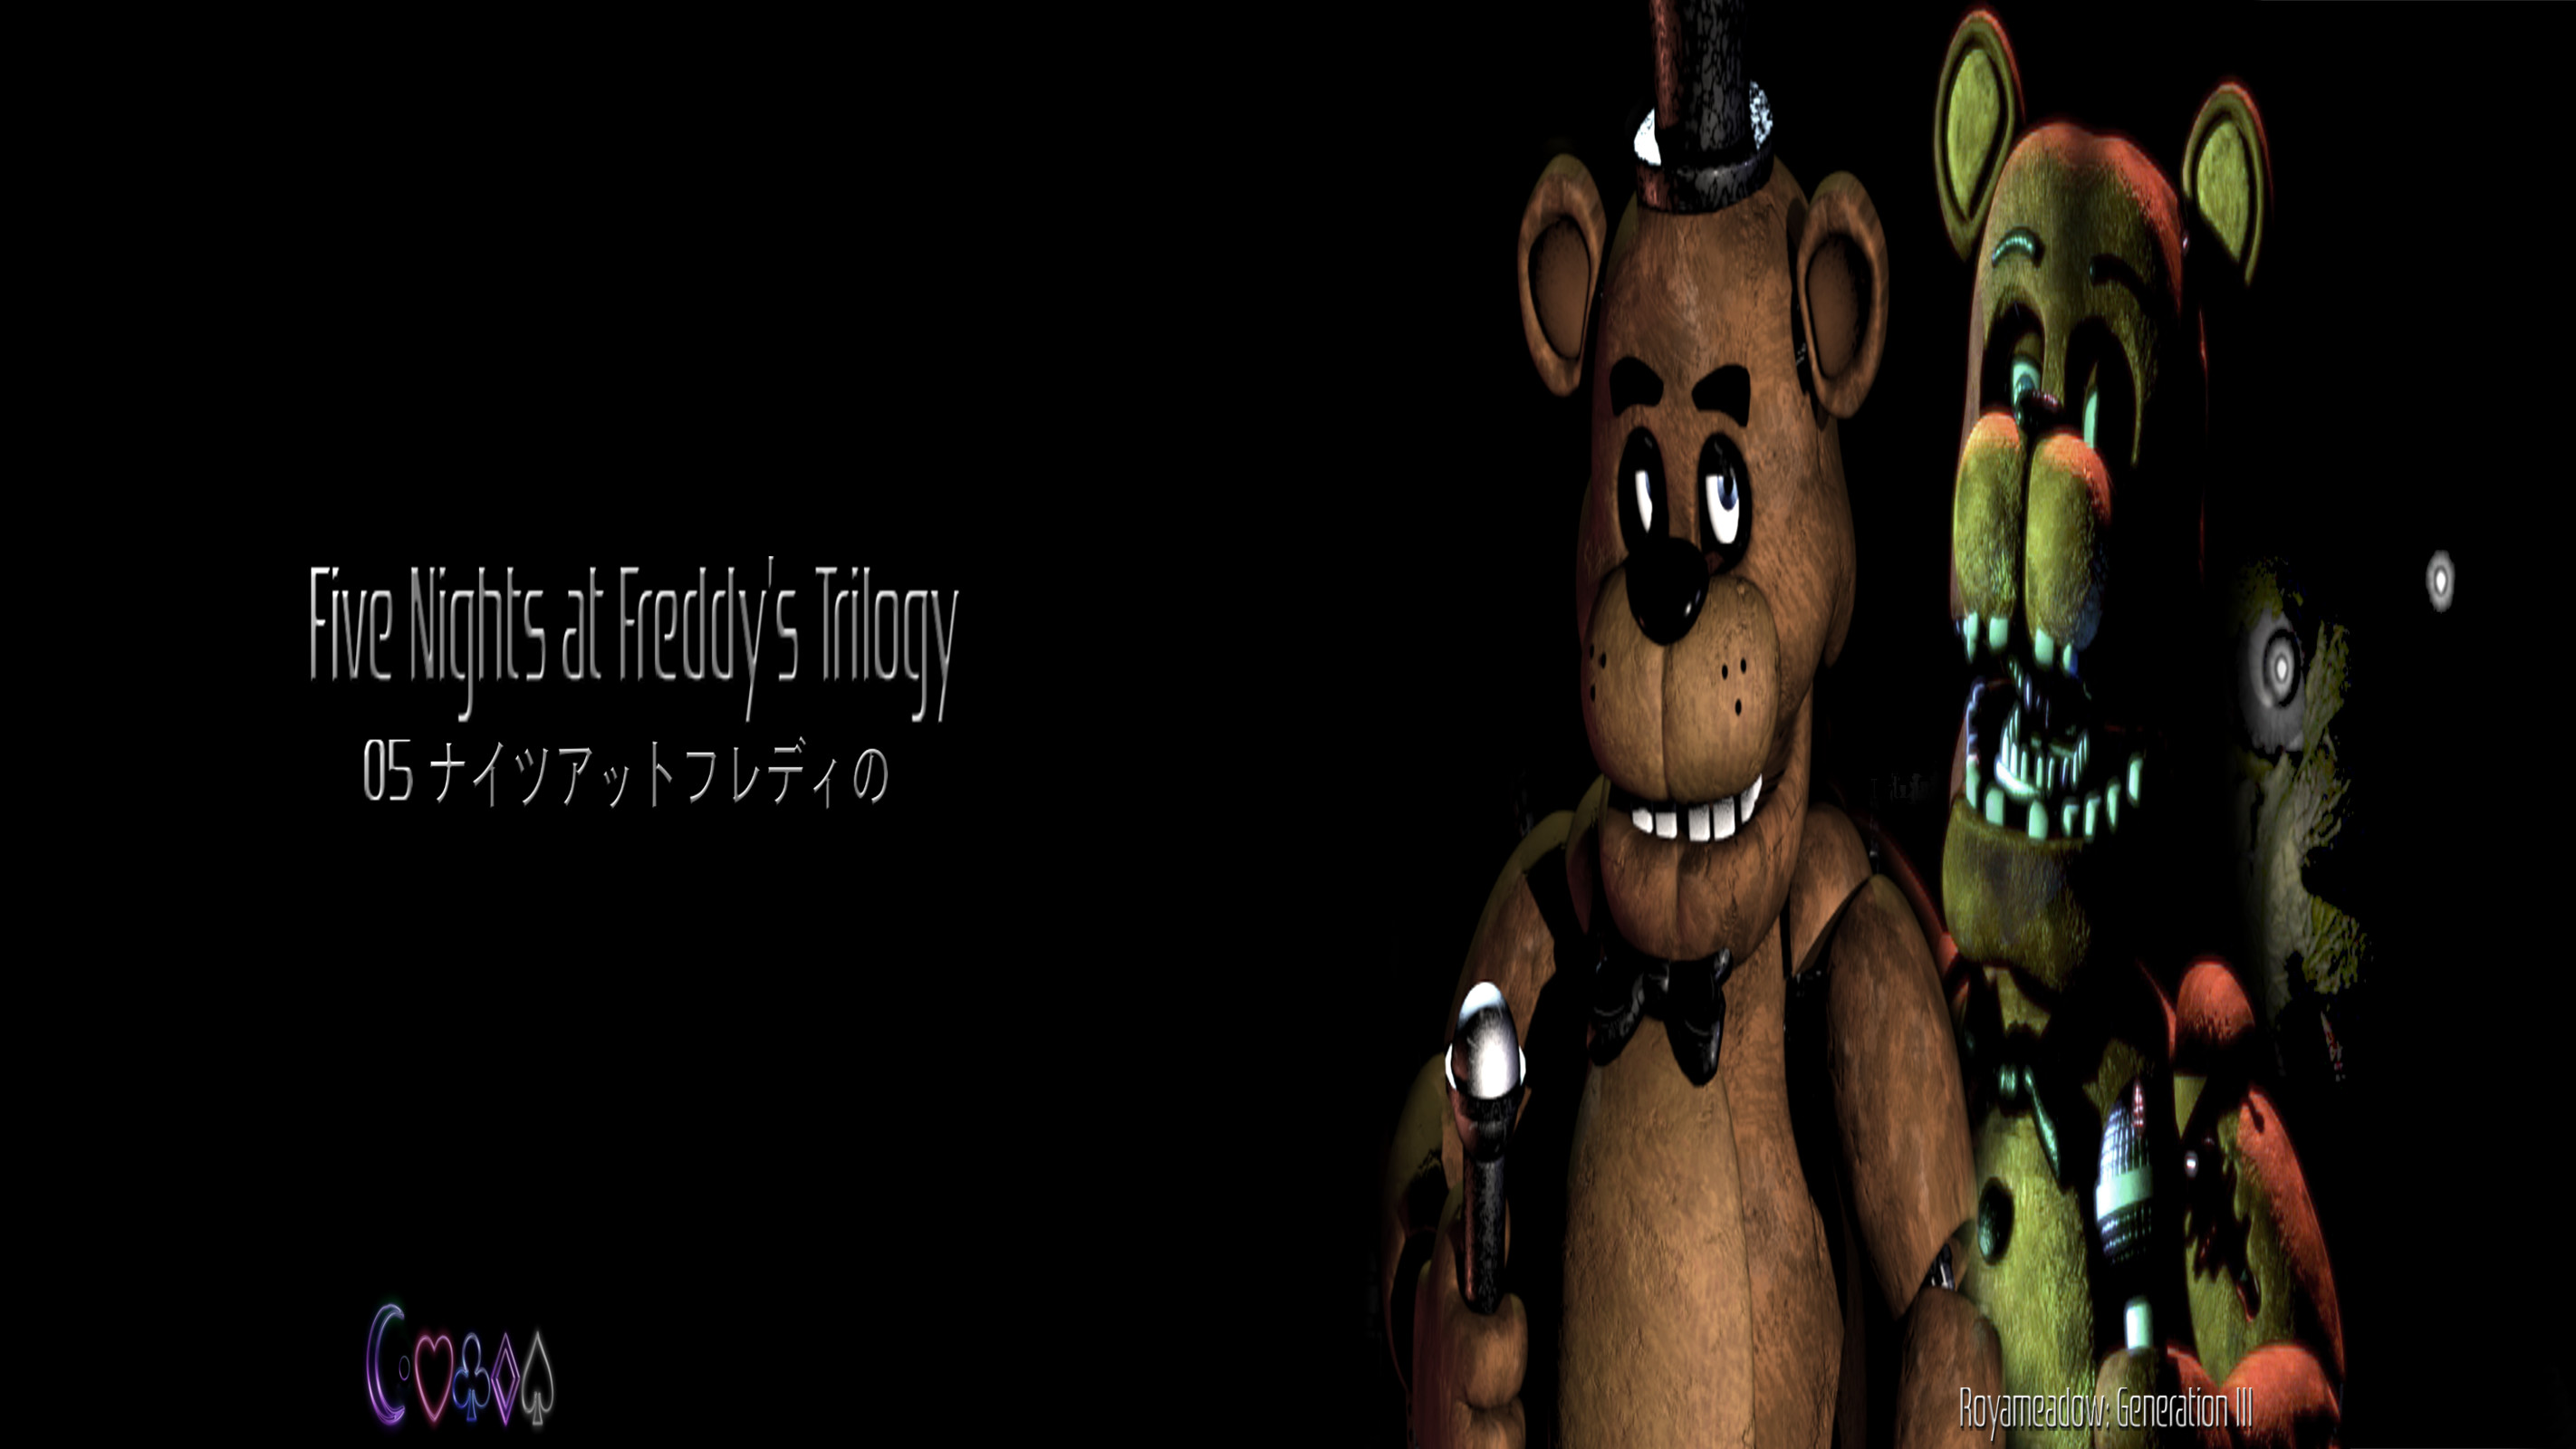 2844x1600 ... Five Nights at Freddy's Trilogy: Video Wallpaper by Royameadow